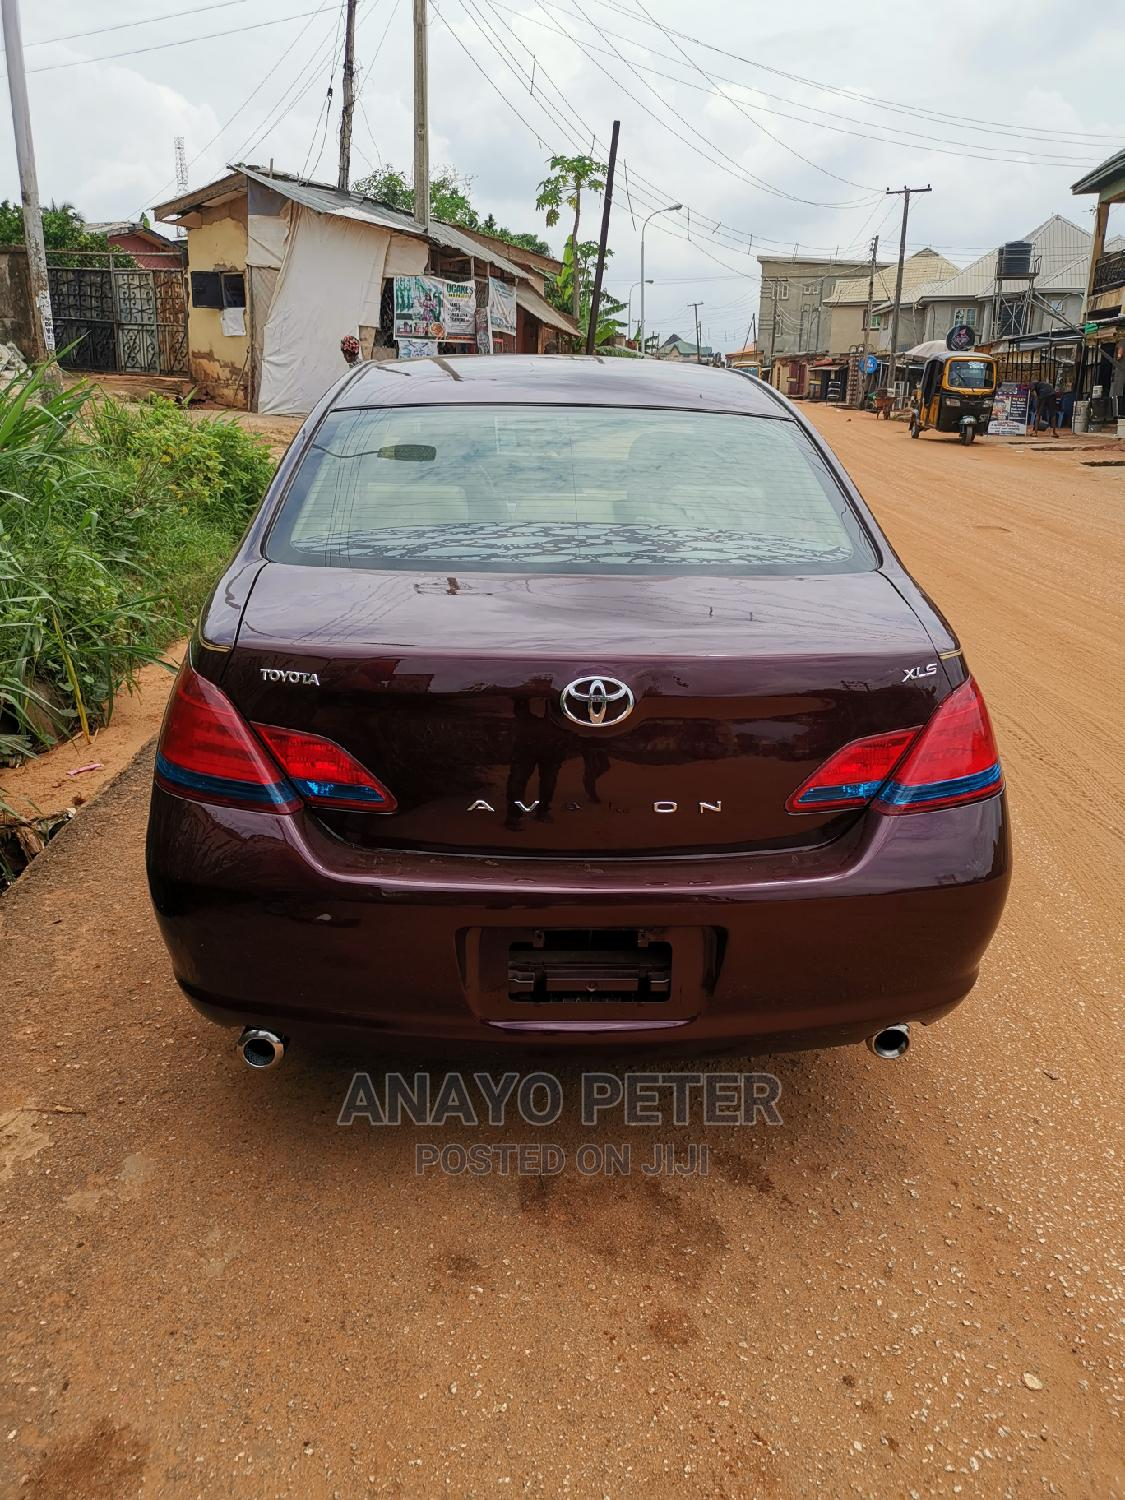 Toyota Avalon 2008 Red   Cars for sale in Awka, Anambra State, Nigeria